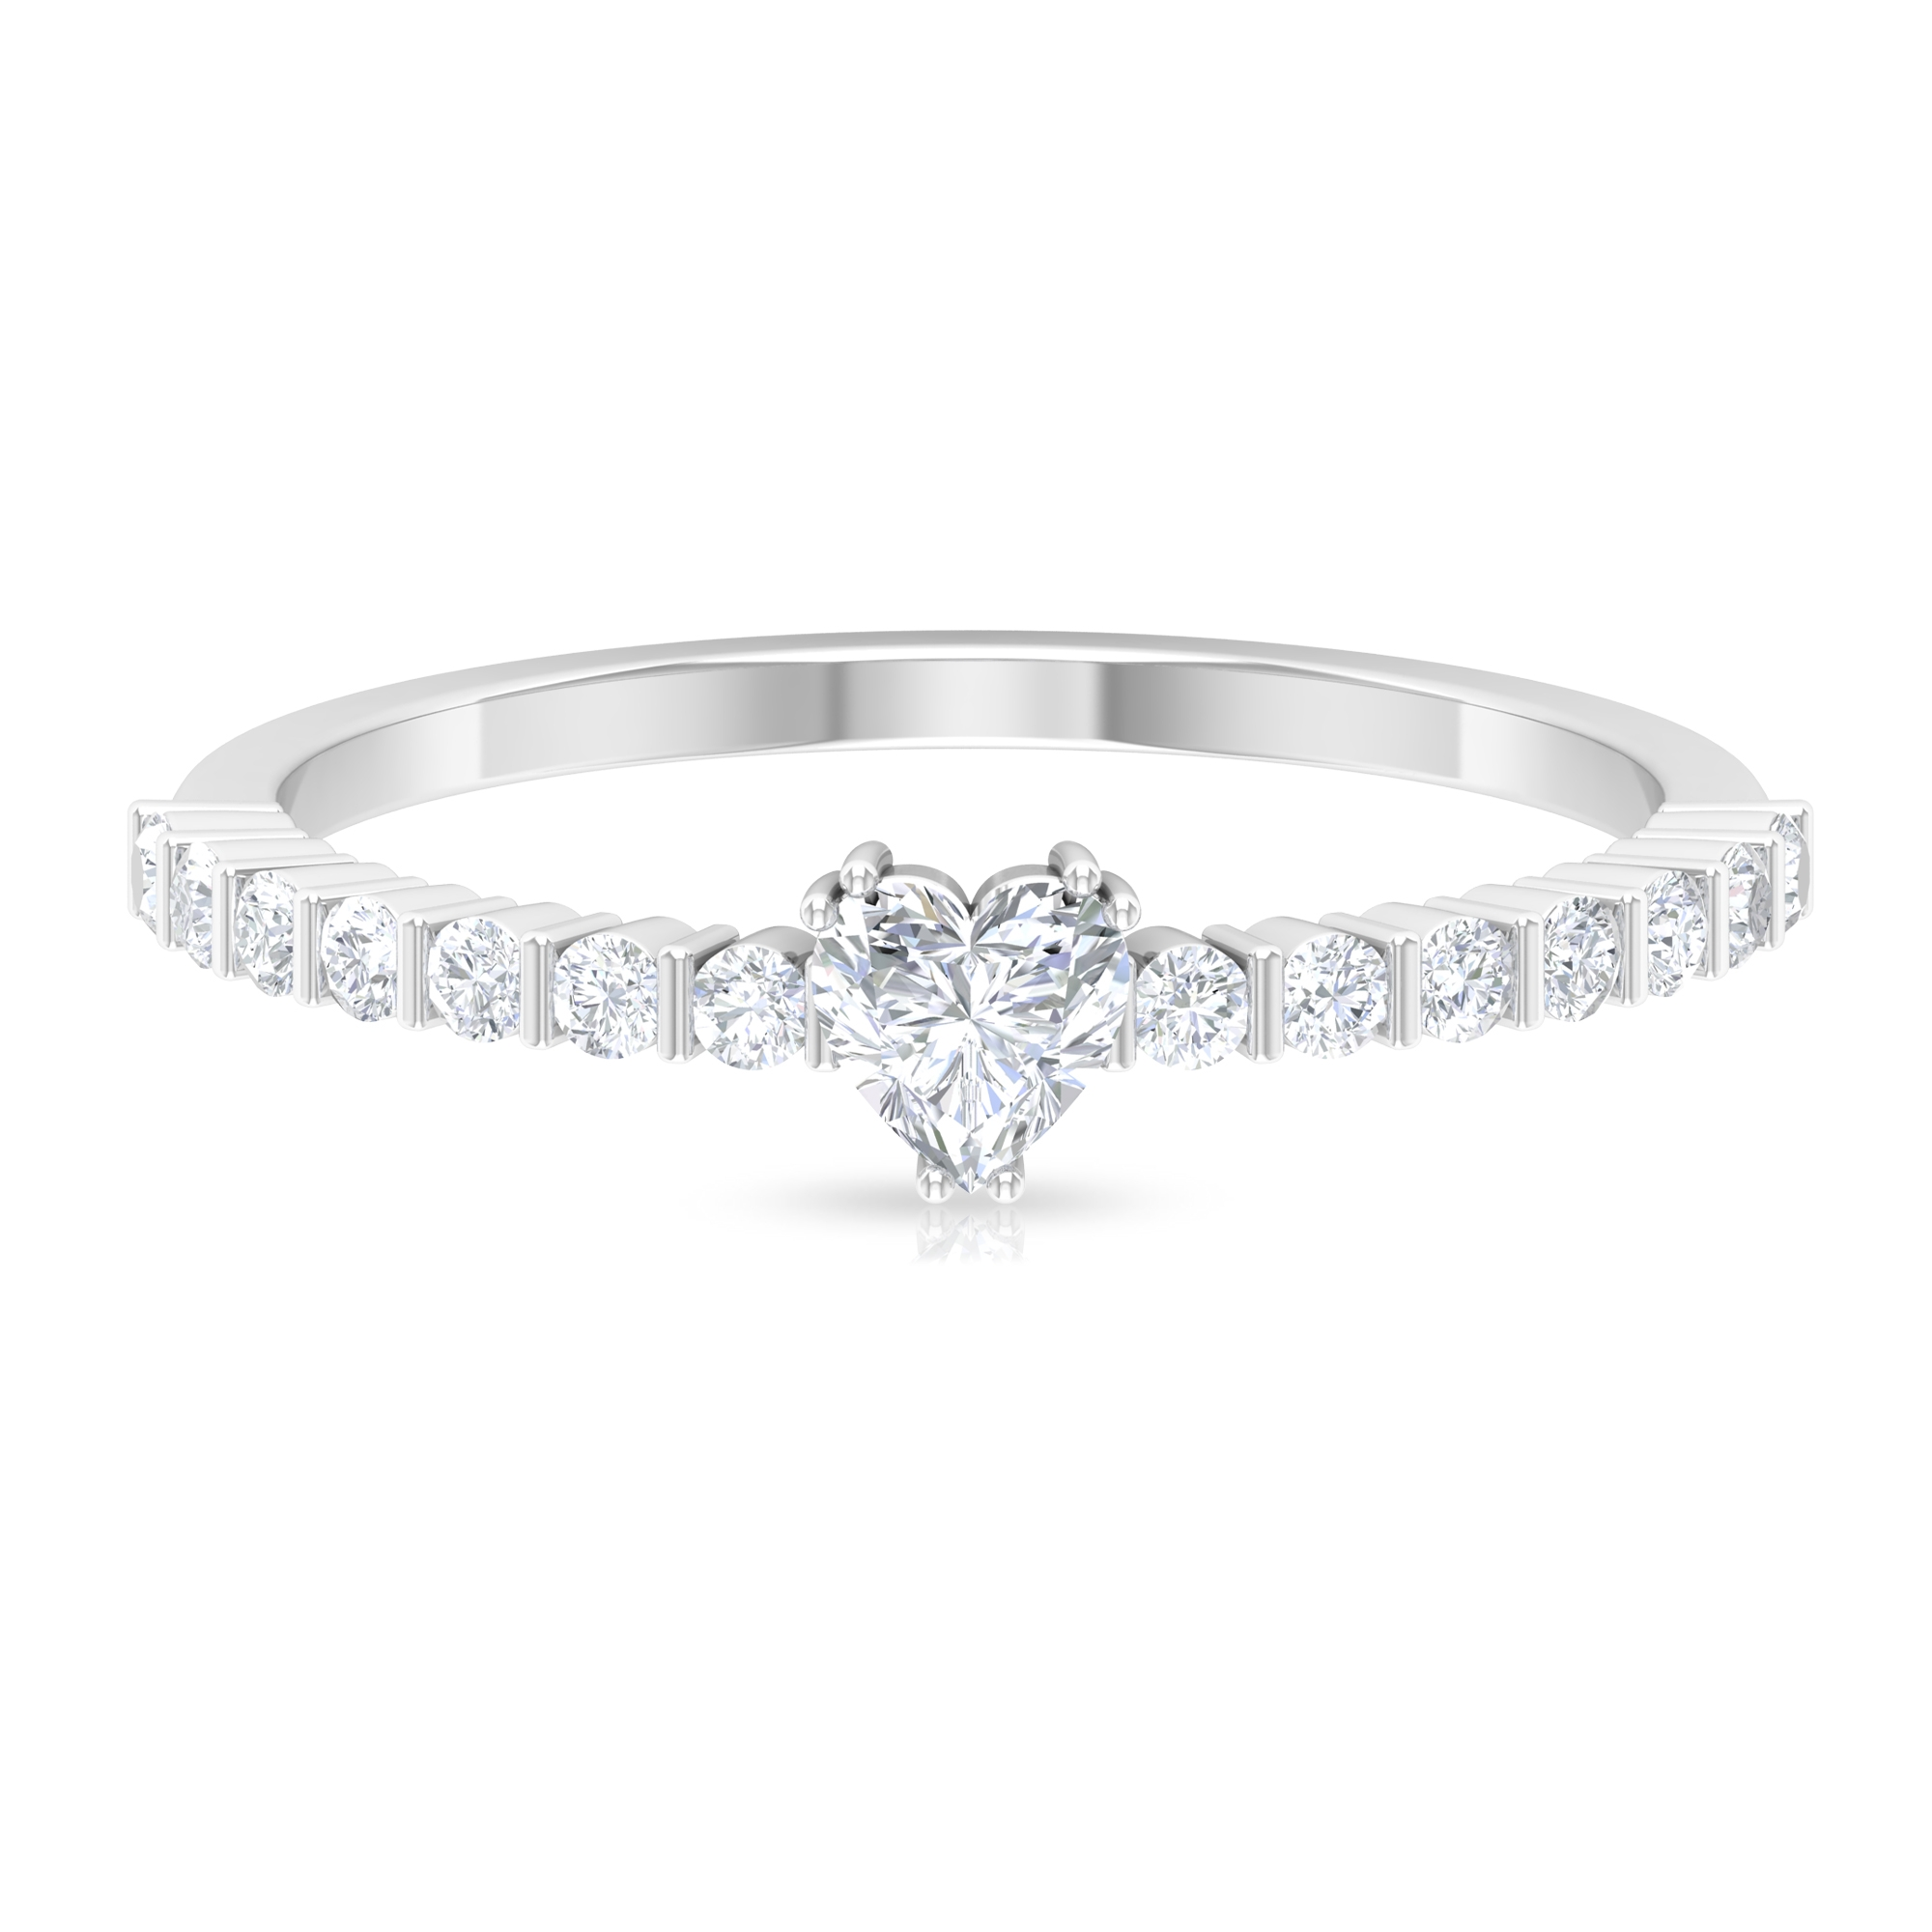 1/2 CT Diamond Solitaire Ring in Double Prong Setting with Side Stones